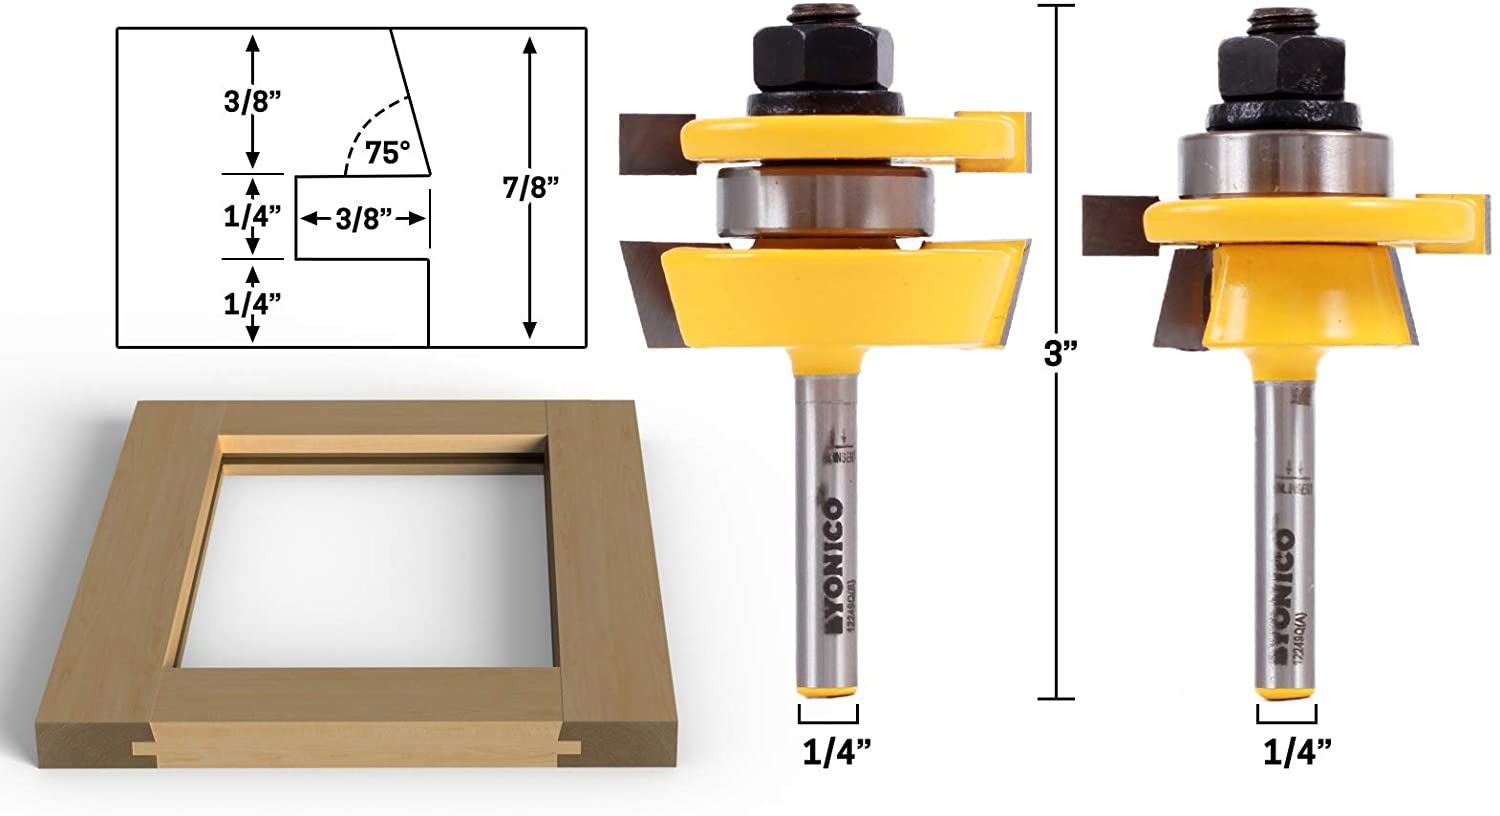 Yonico 12249q Shaker 2 Bit Rail and Stile Router Bit Set 1/4-Inch Shank